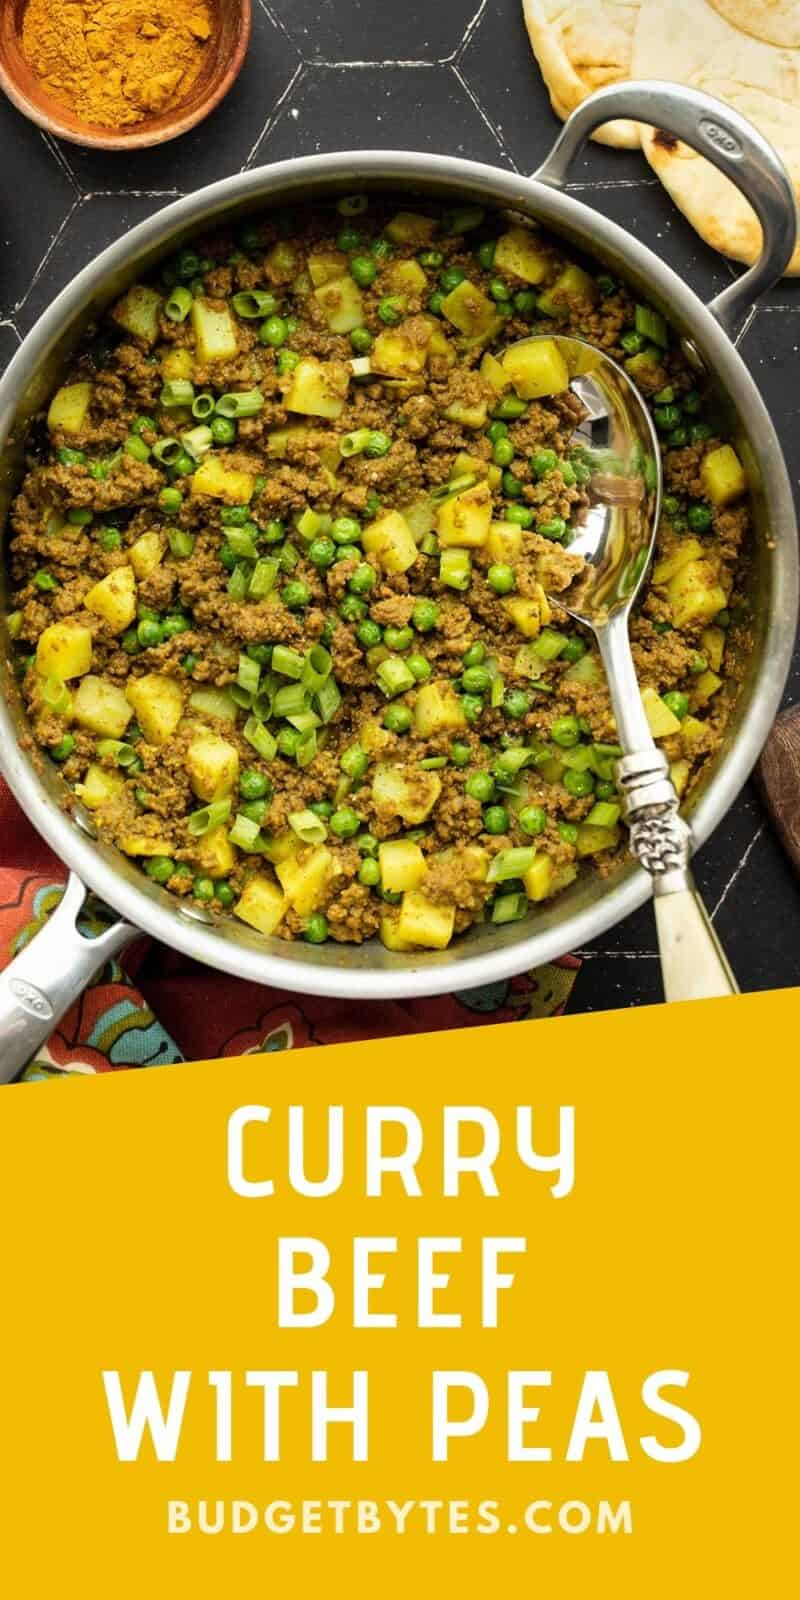 A skillet full of curried ground beef with peas and potatoes, title text at the bottom